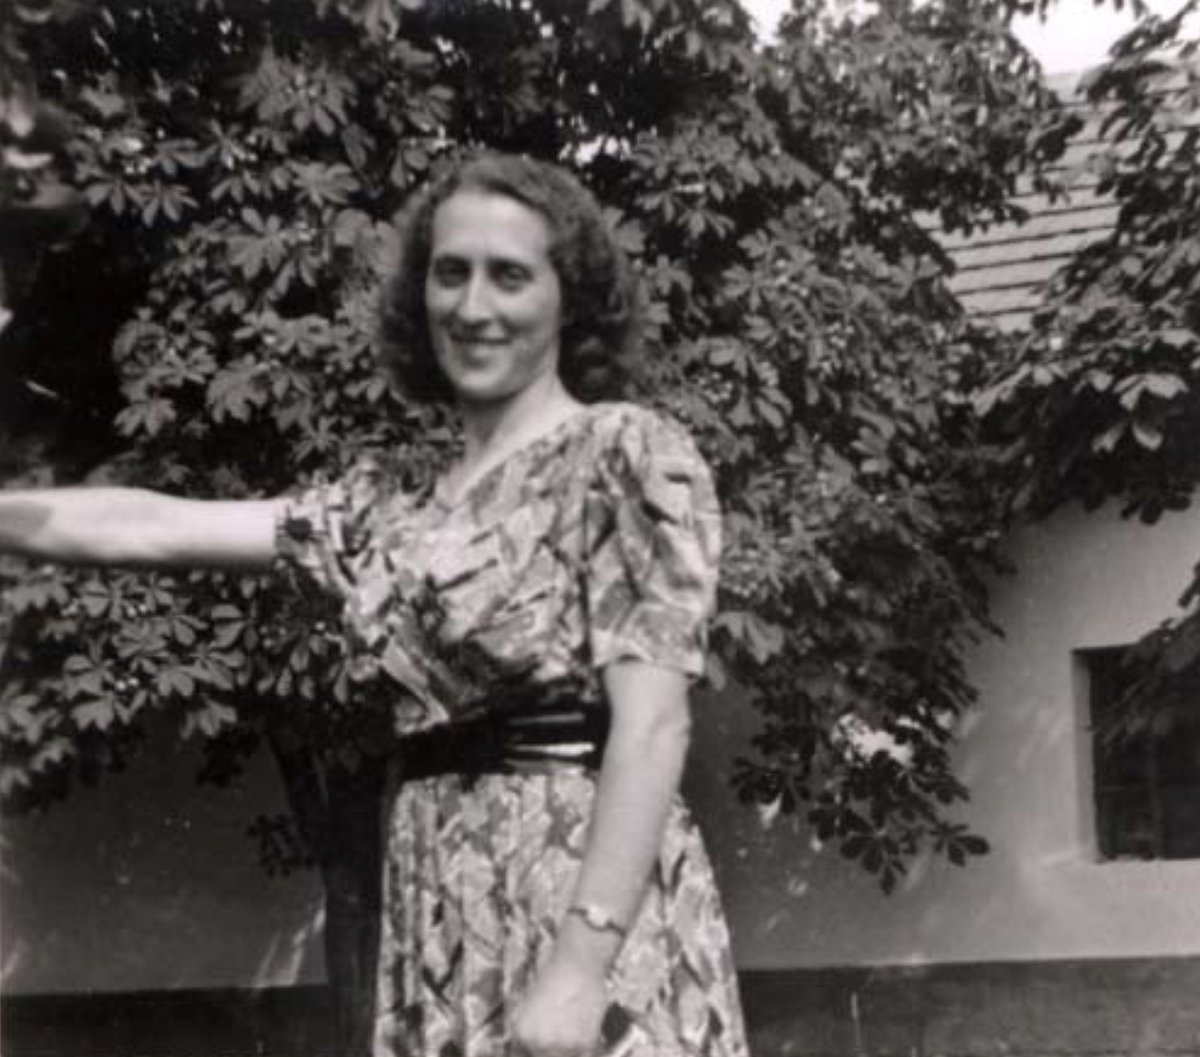 17 January 1913 | Hungarian Jewish woman Olga Kertesz was born in Pely. In June 1944 she was deported to #Auschwitz and murdered in a gas chamber.